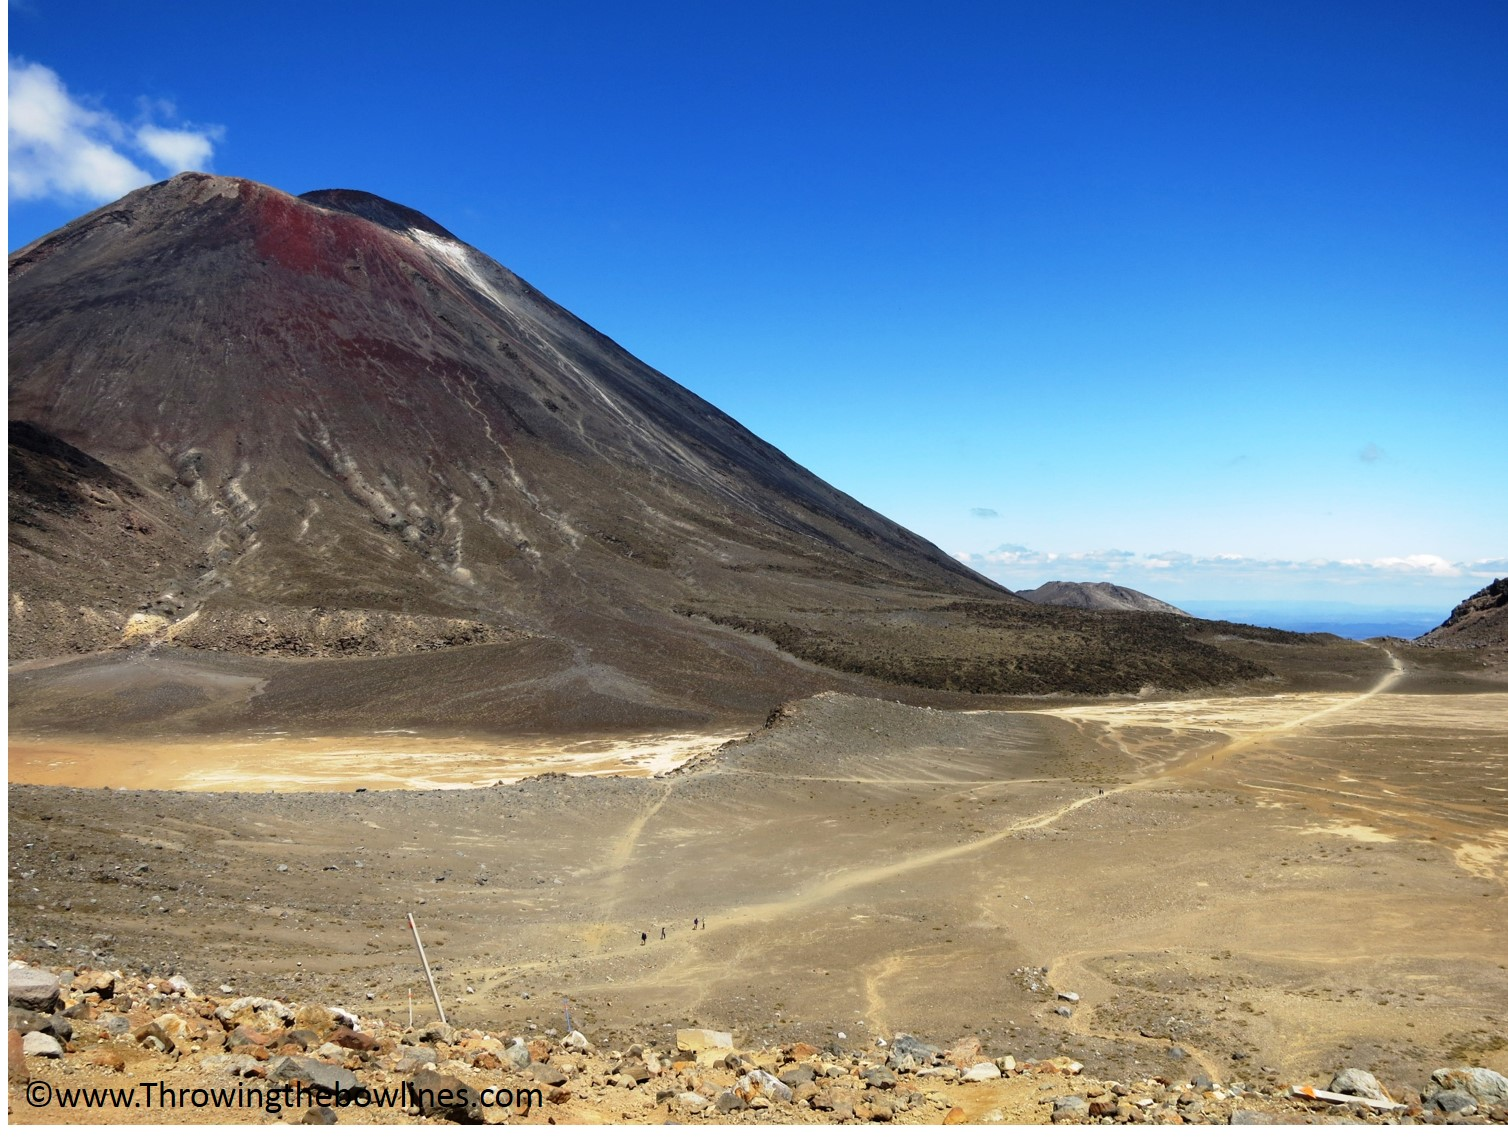 A look back at Mt. Doom as I embarked on summit #2, Mt. Tongariro